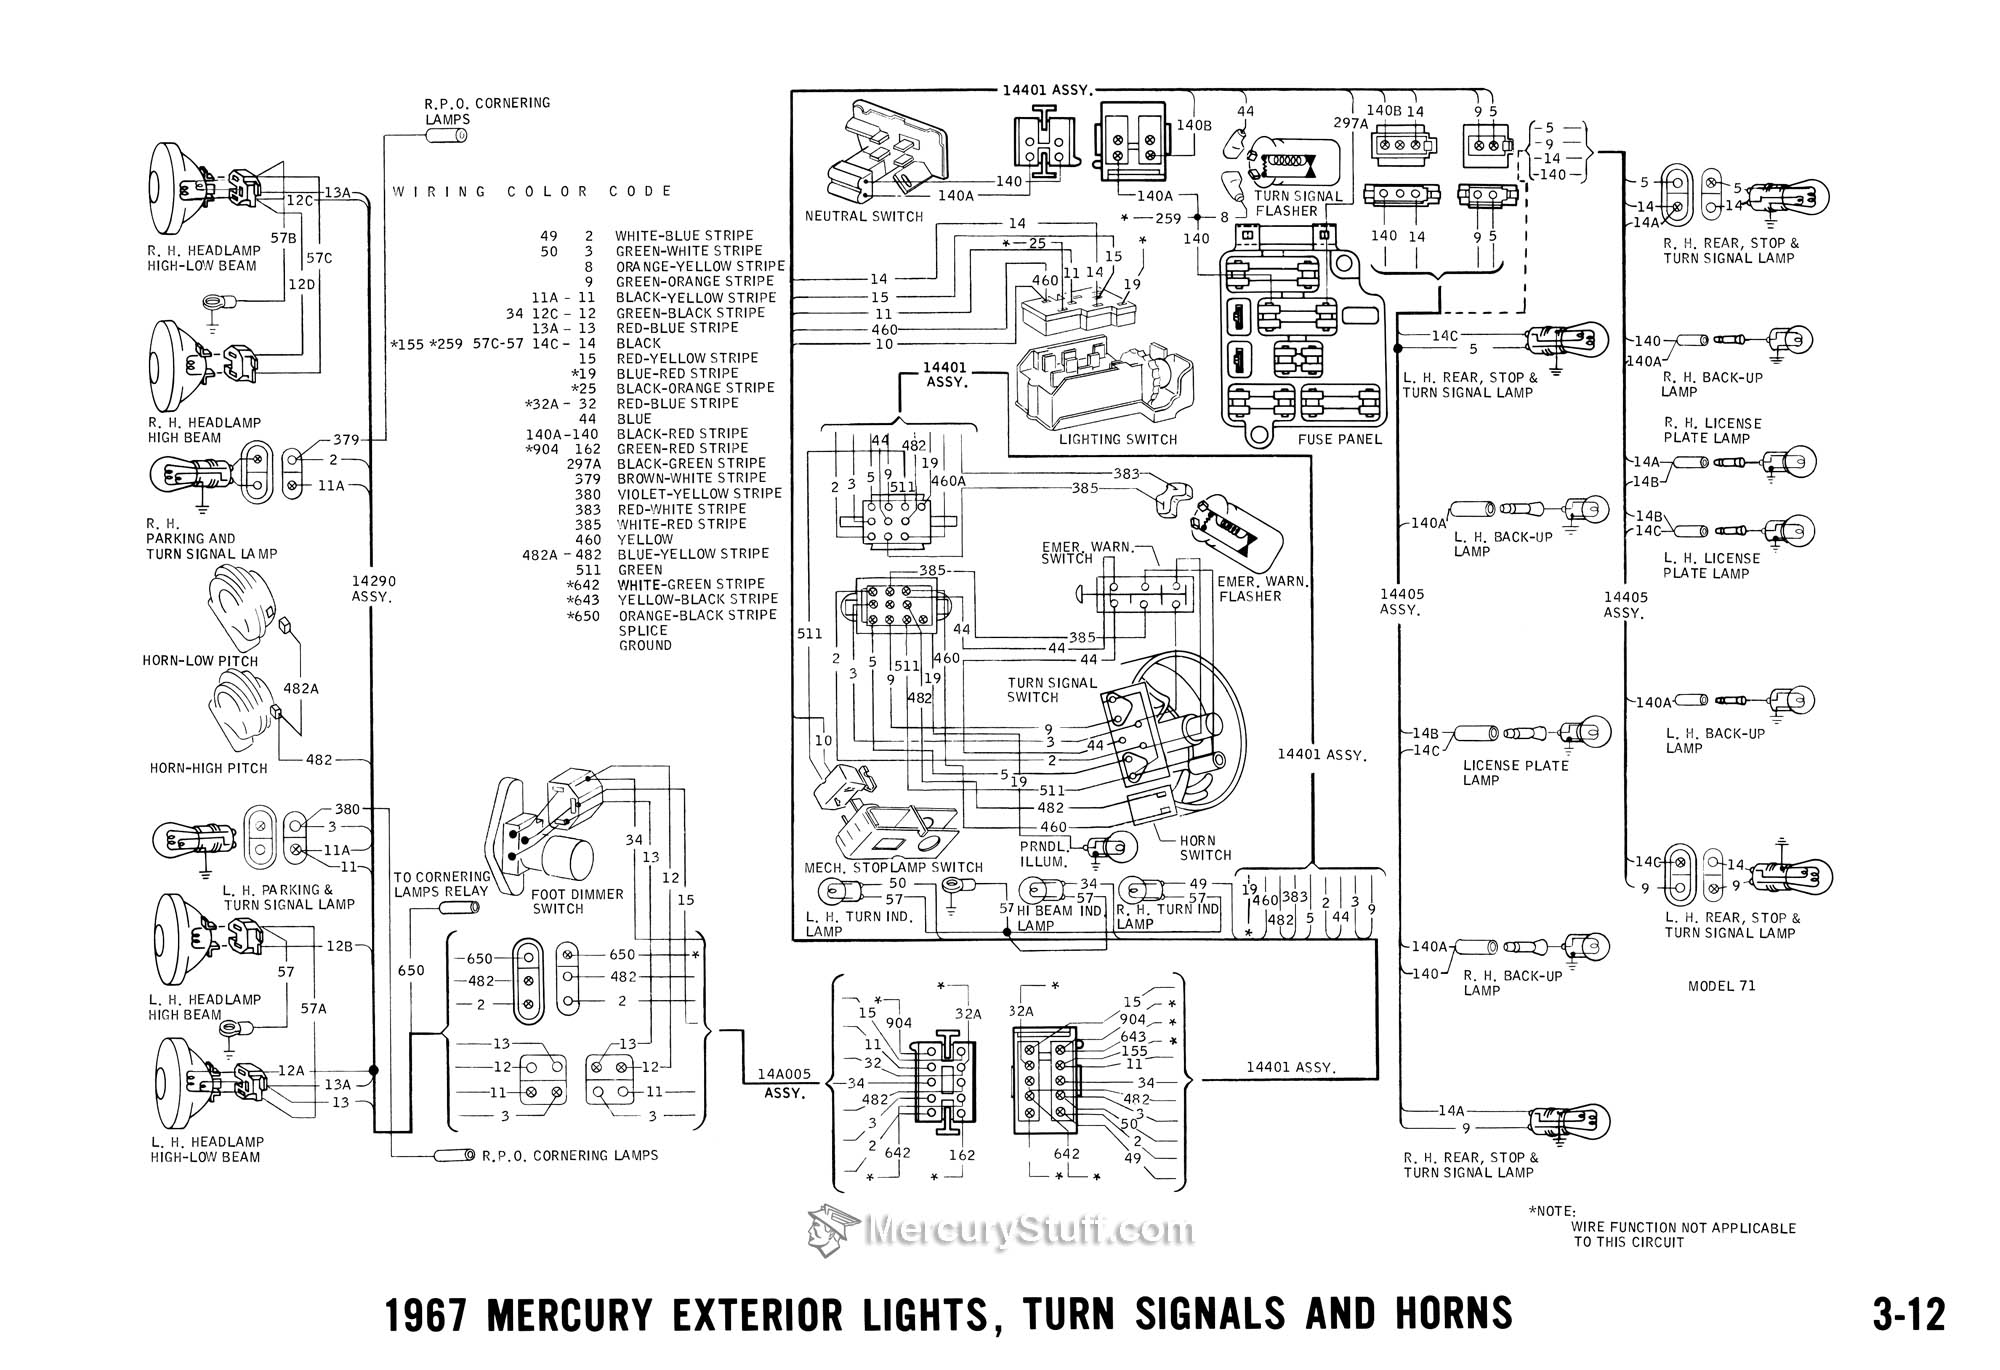 1967 mercury exterior lights turn signals horns cornering lights 1966 mercury mercury forum mercury 2002 mercury cougar wiring diagram at honlapkeszites.co